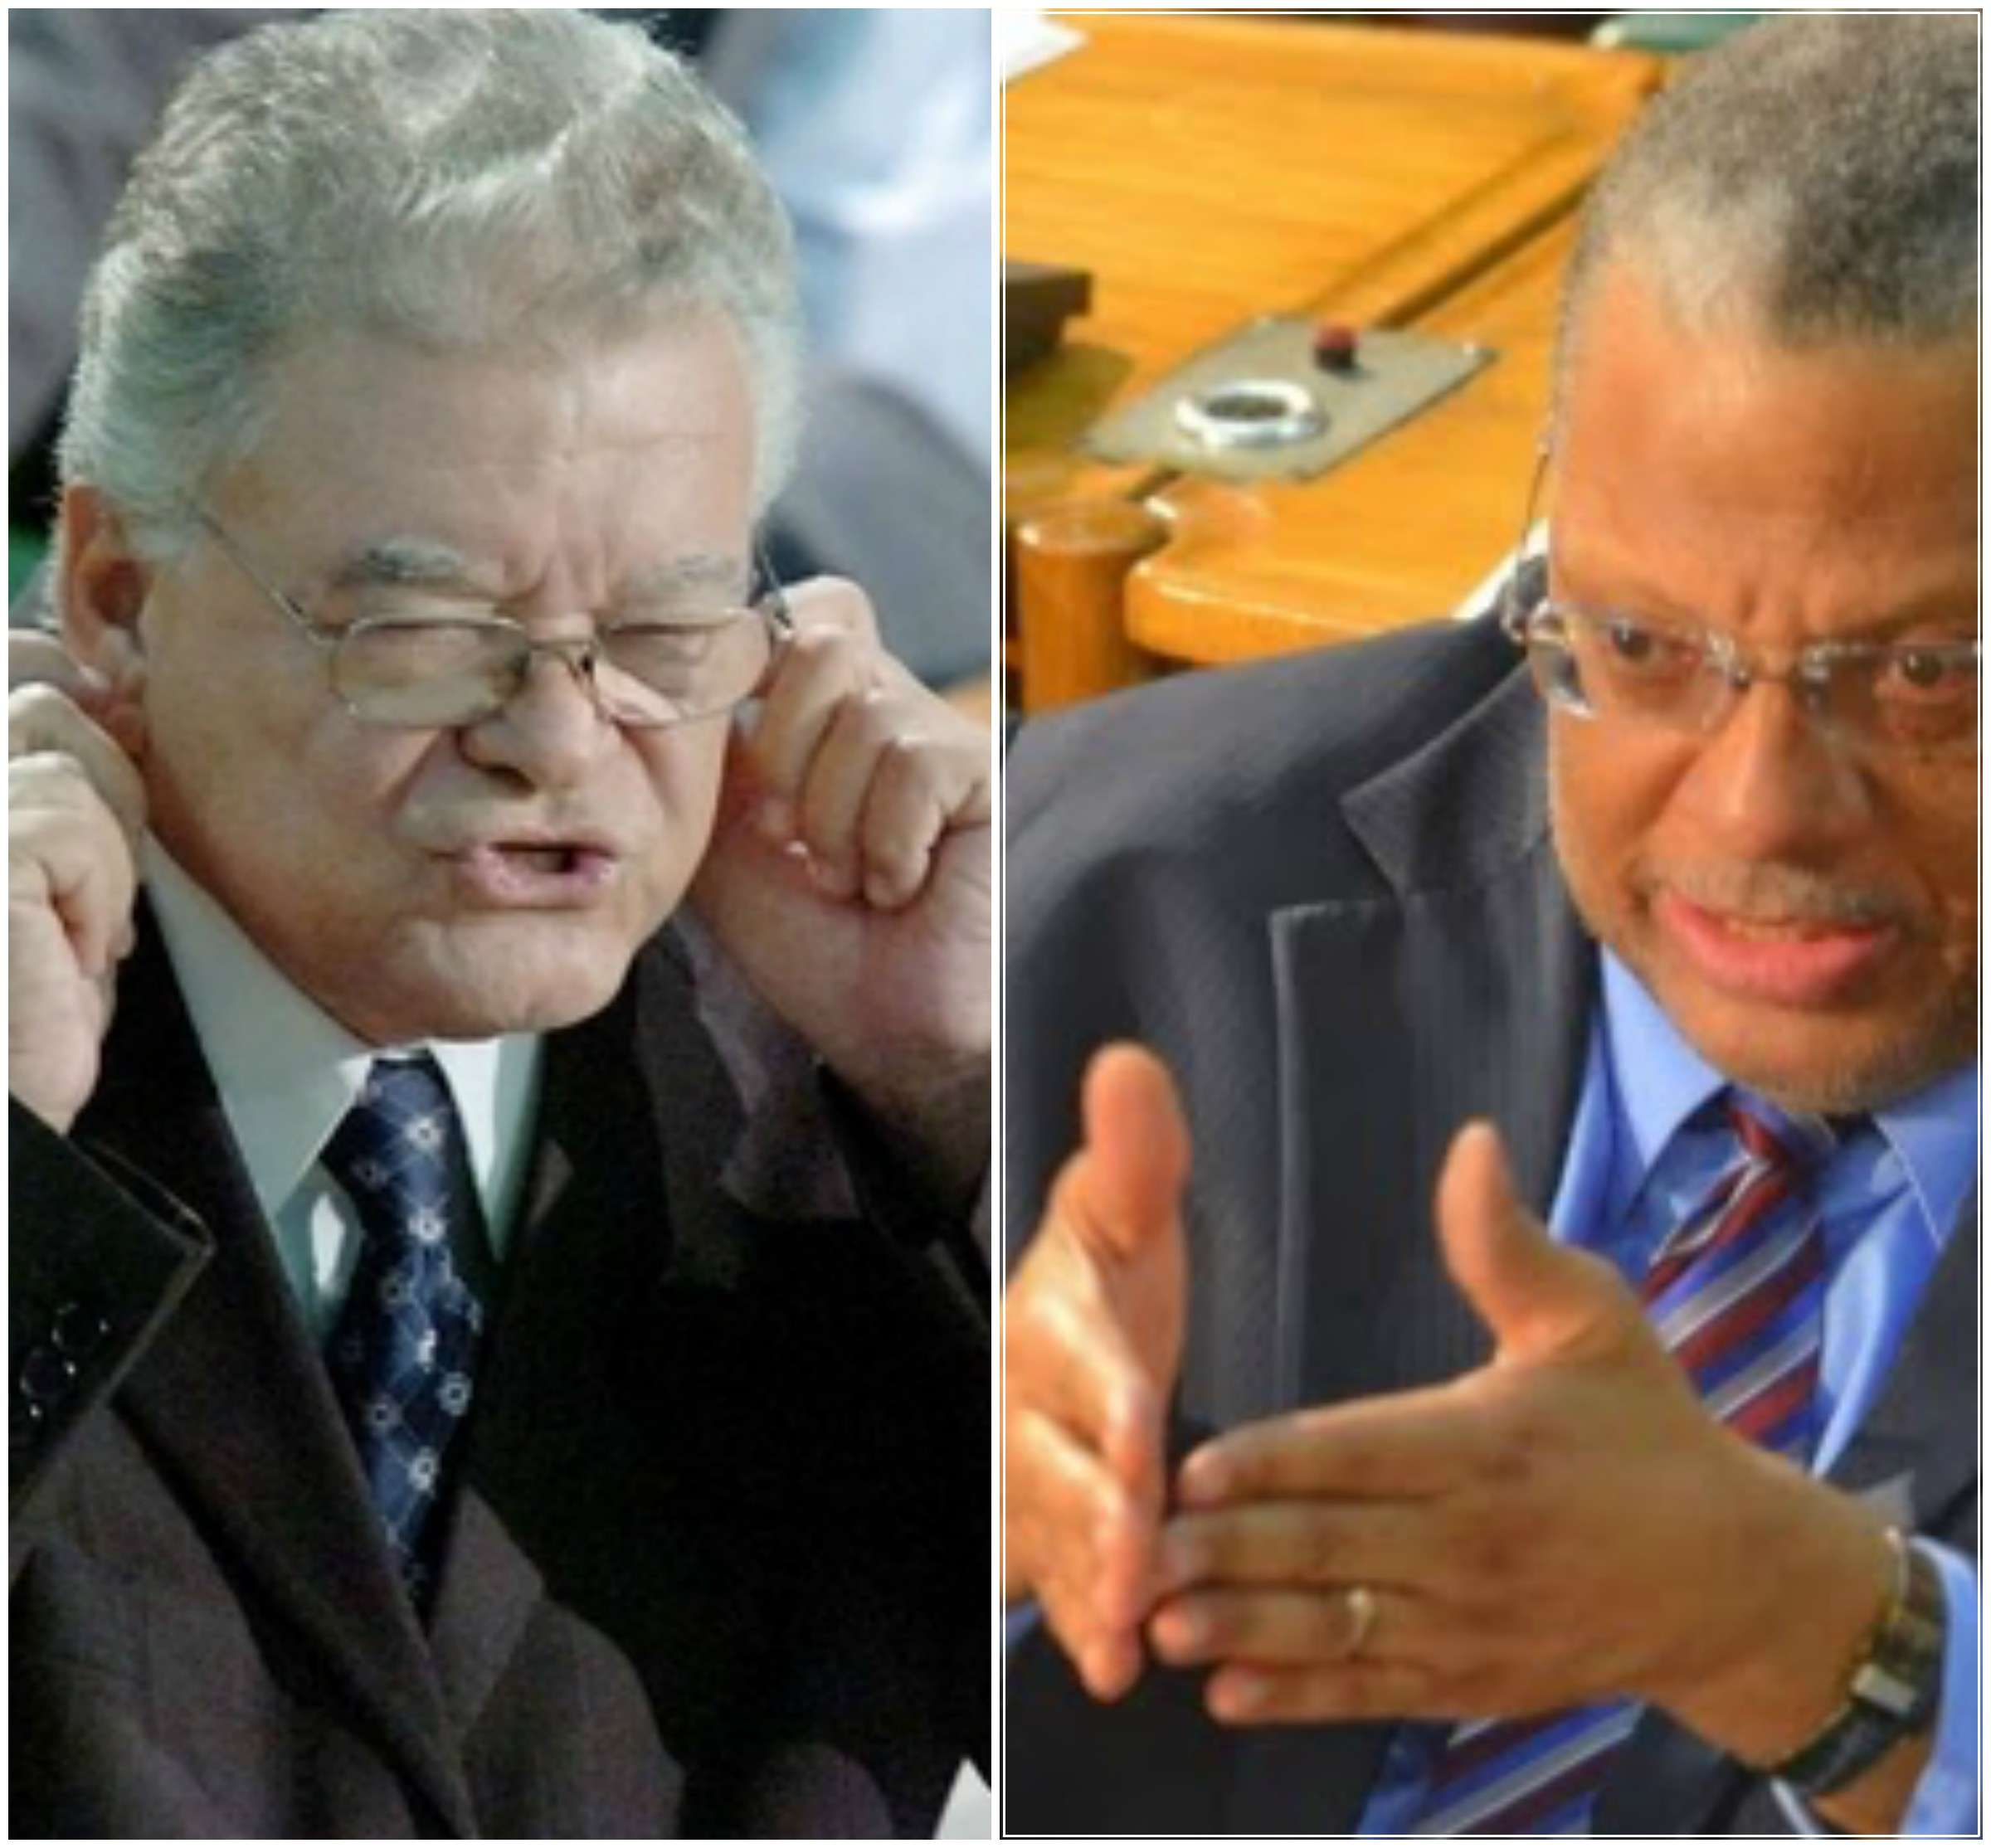 Samuda and Phillips Clash Over Transfer Pricing Bill